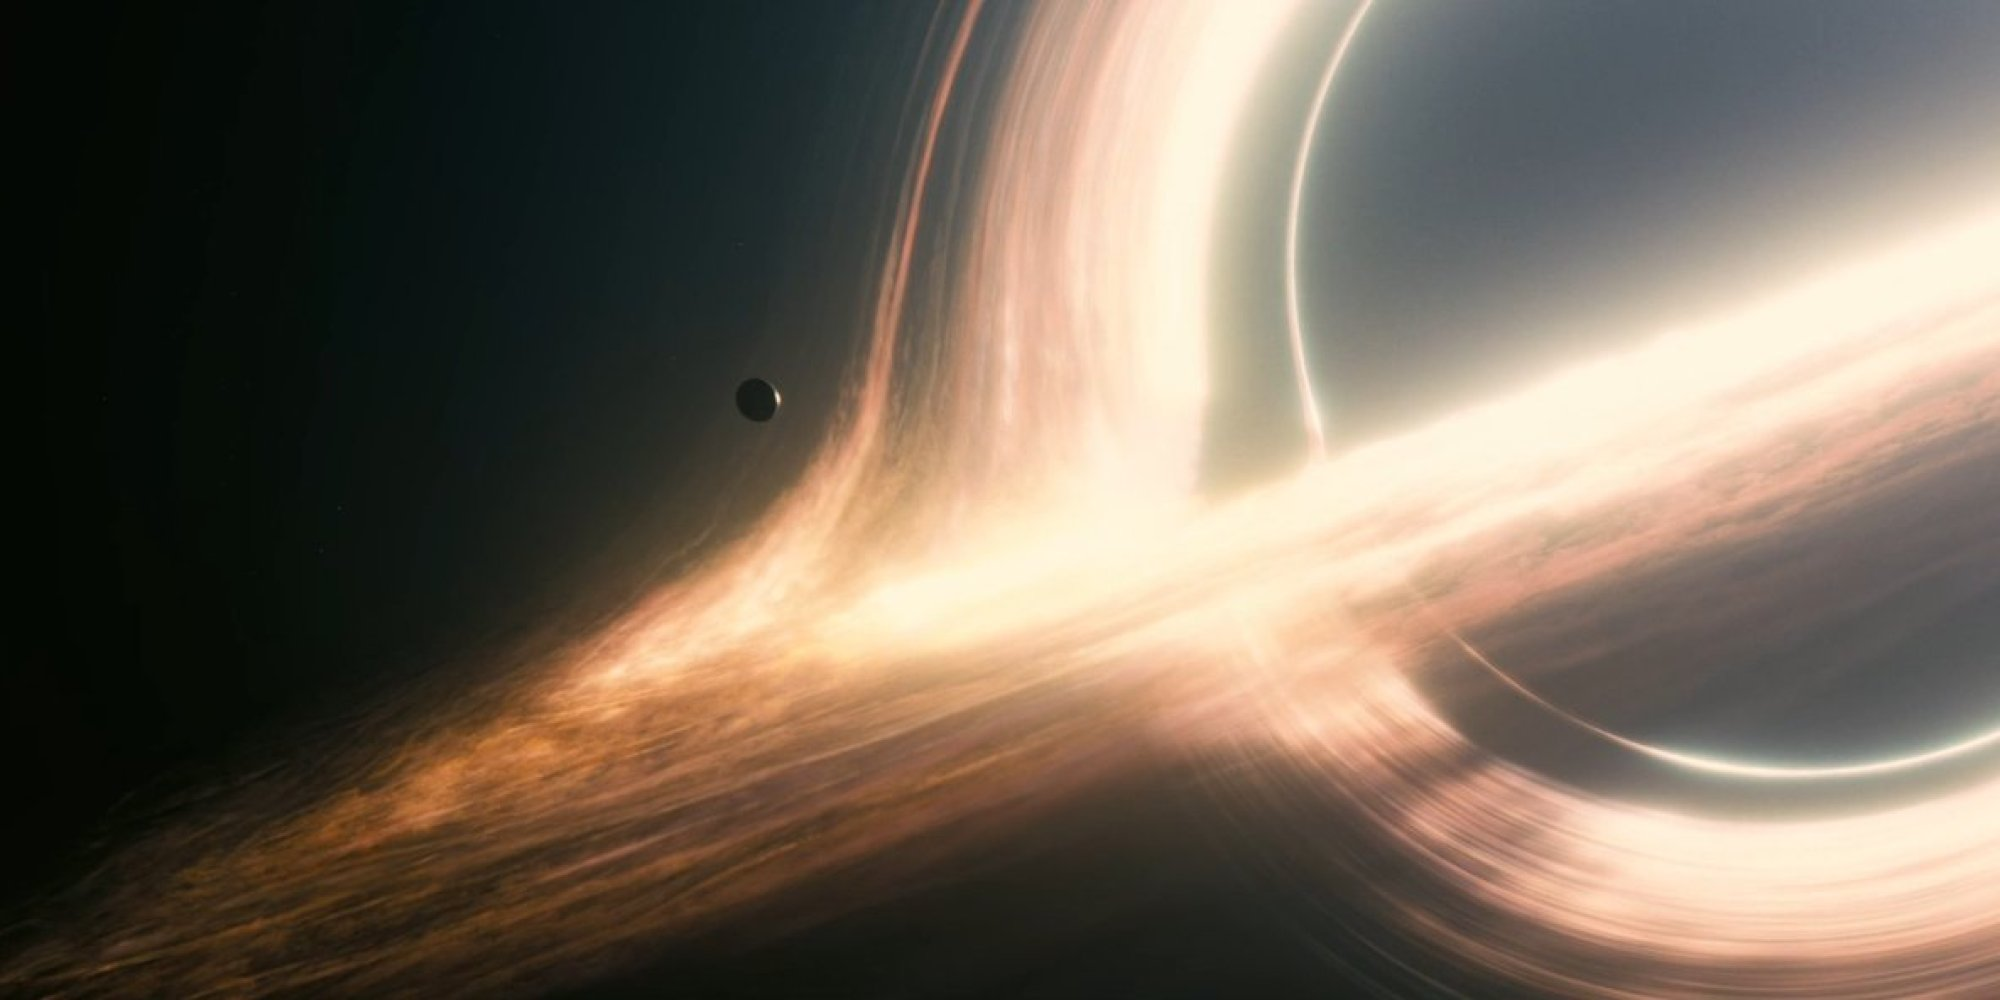 Interstellar, the new movie from Christopher Nolan